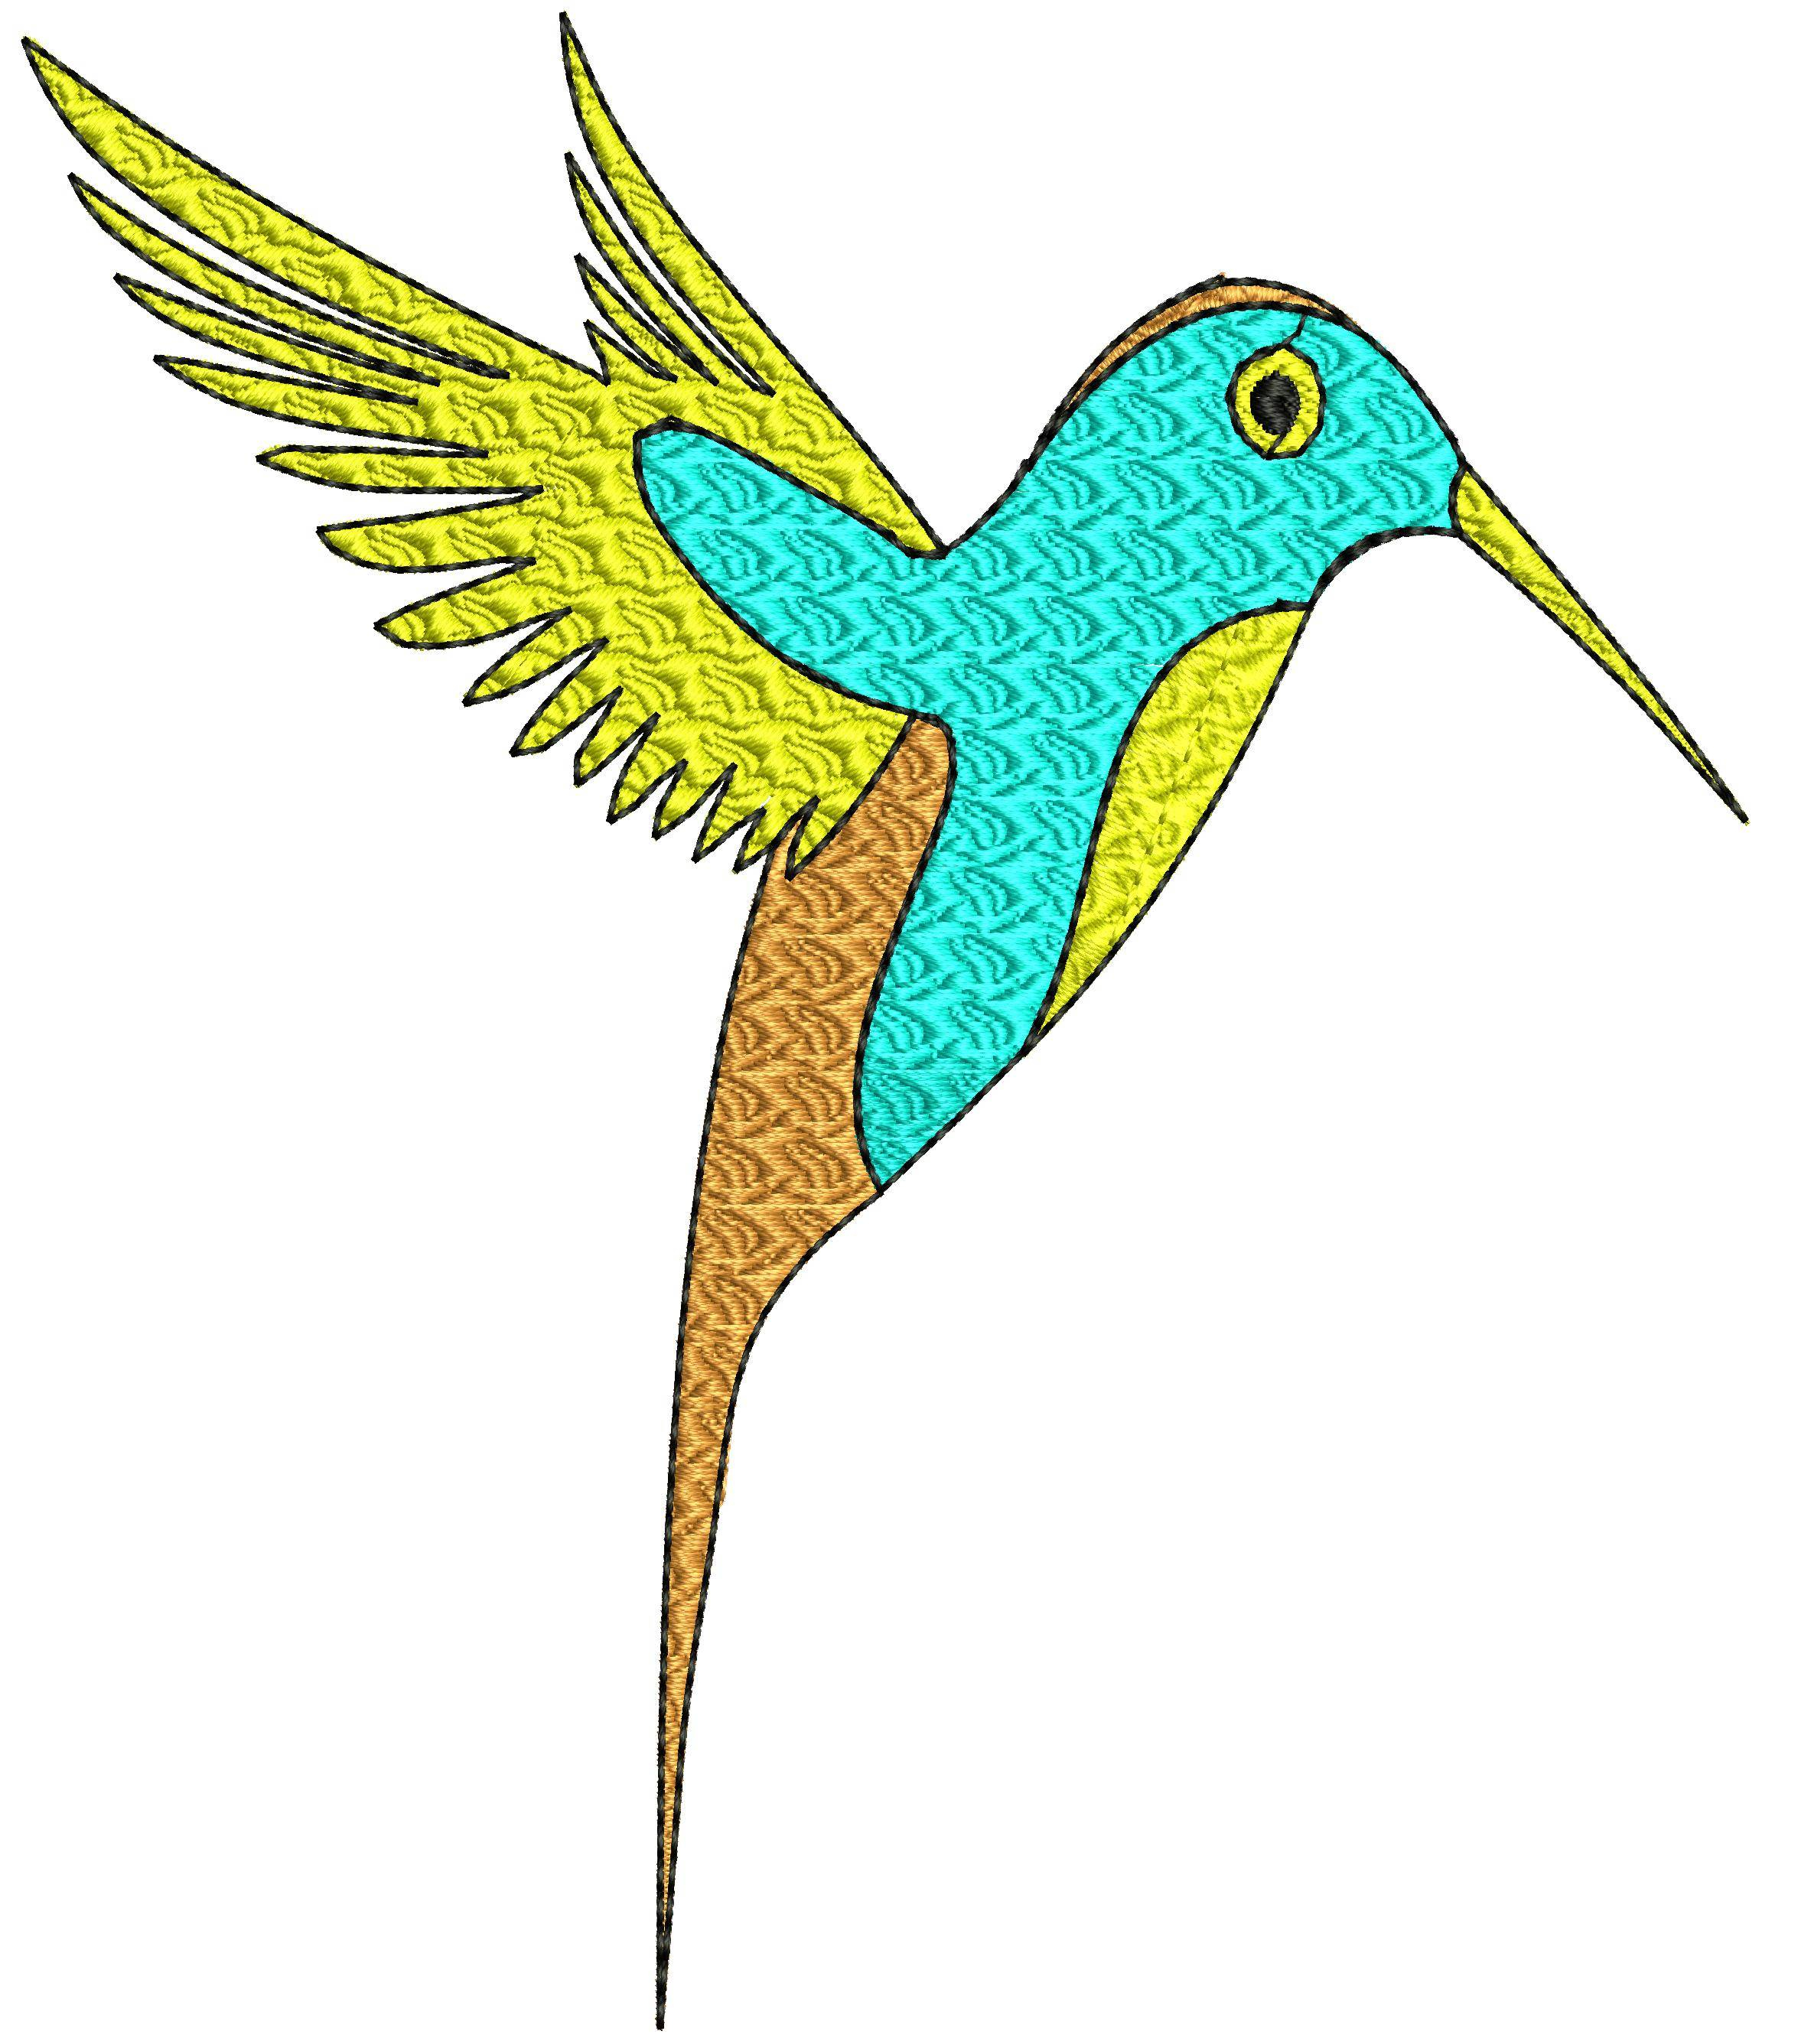 Bird Embroidery Pattern Colorline Bird Embroidery Design